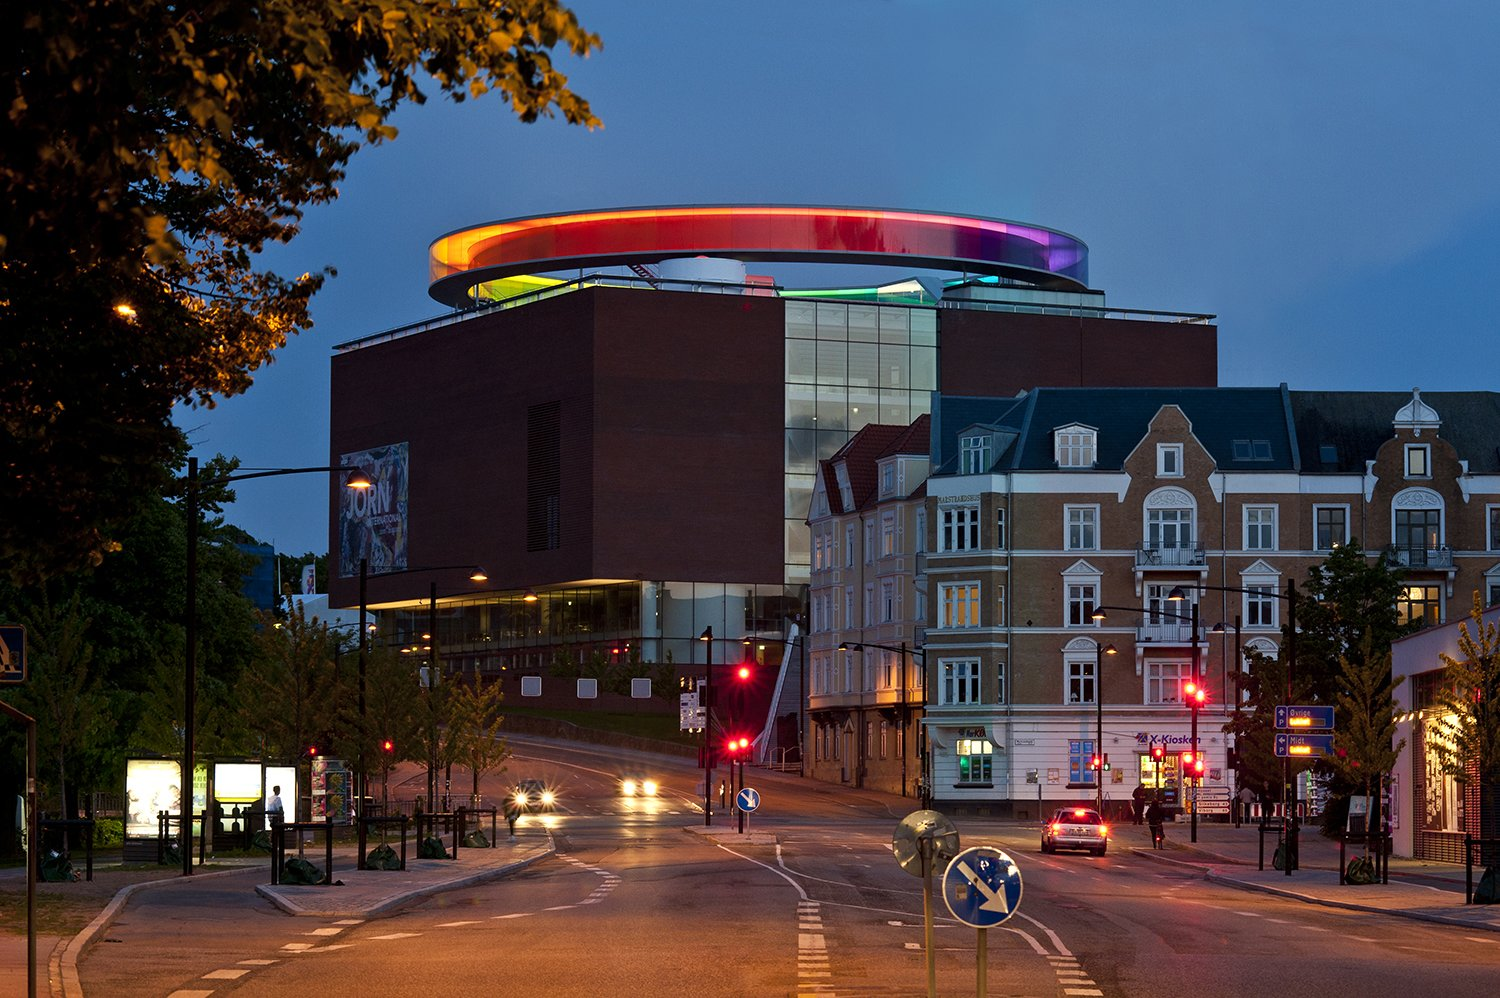 """Your Rainbow Panorama,"" Olafur Eliasson, 2006-2011.  Eliasson's team created a 360-degree walkway above the ARoS Aarhus Kunstmuseum in Denmark, which provides panoramic views of the surrounding city, filtered through colored glass that forms a rainbow loop.  Eight of Our Favorite Works by Artist Olafur Eliasson by Allie Weiss"